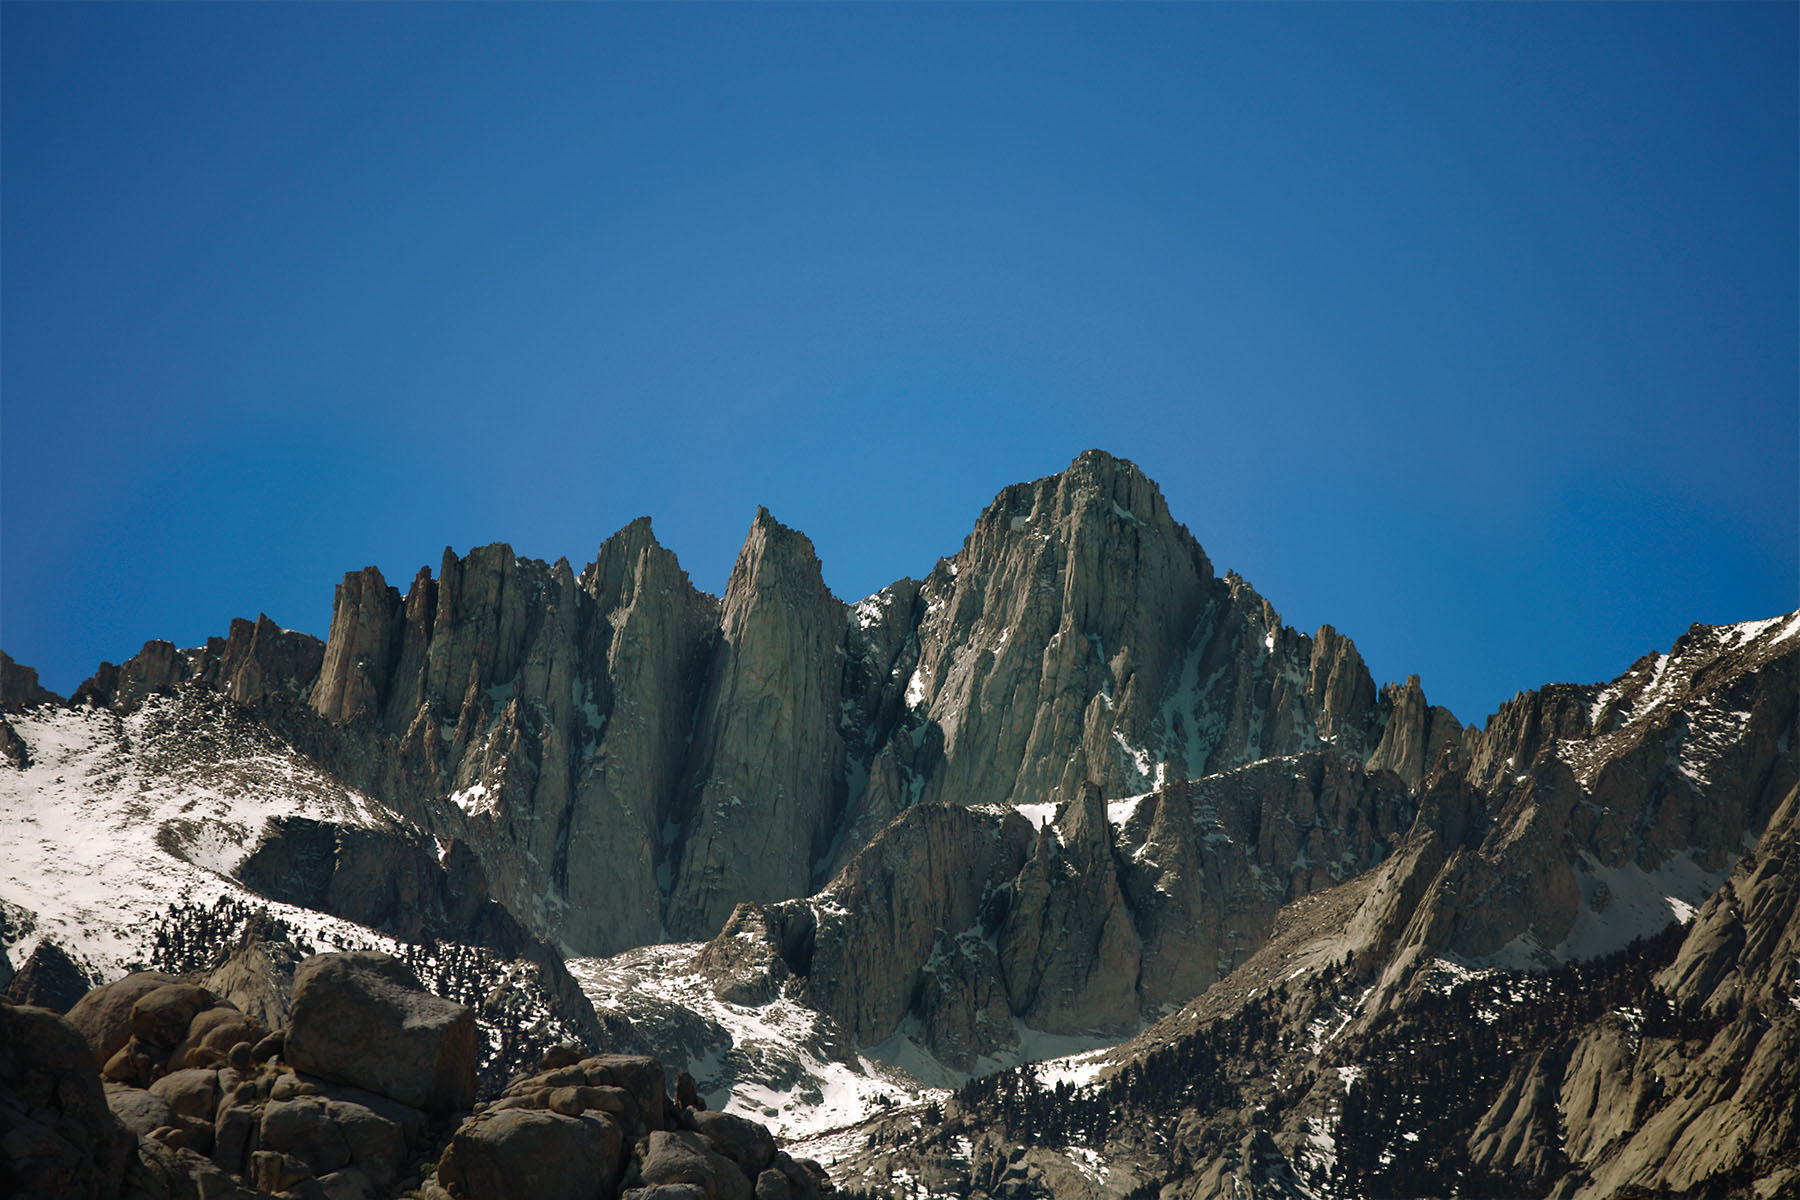 The signature view of Mt. Whitney along with the Keeler Needle and Crooks Peak